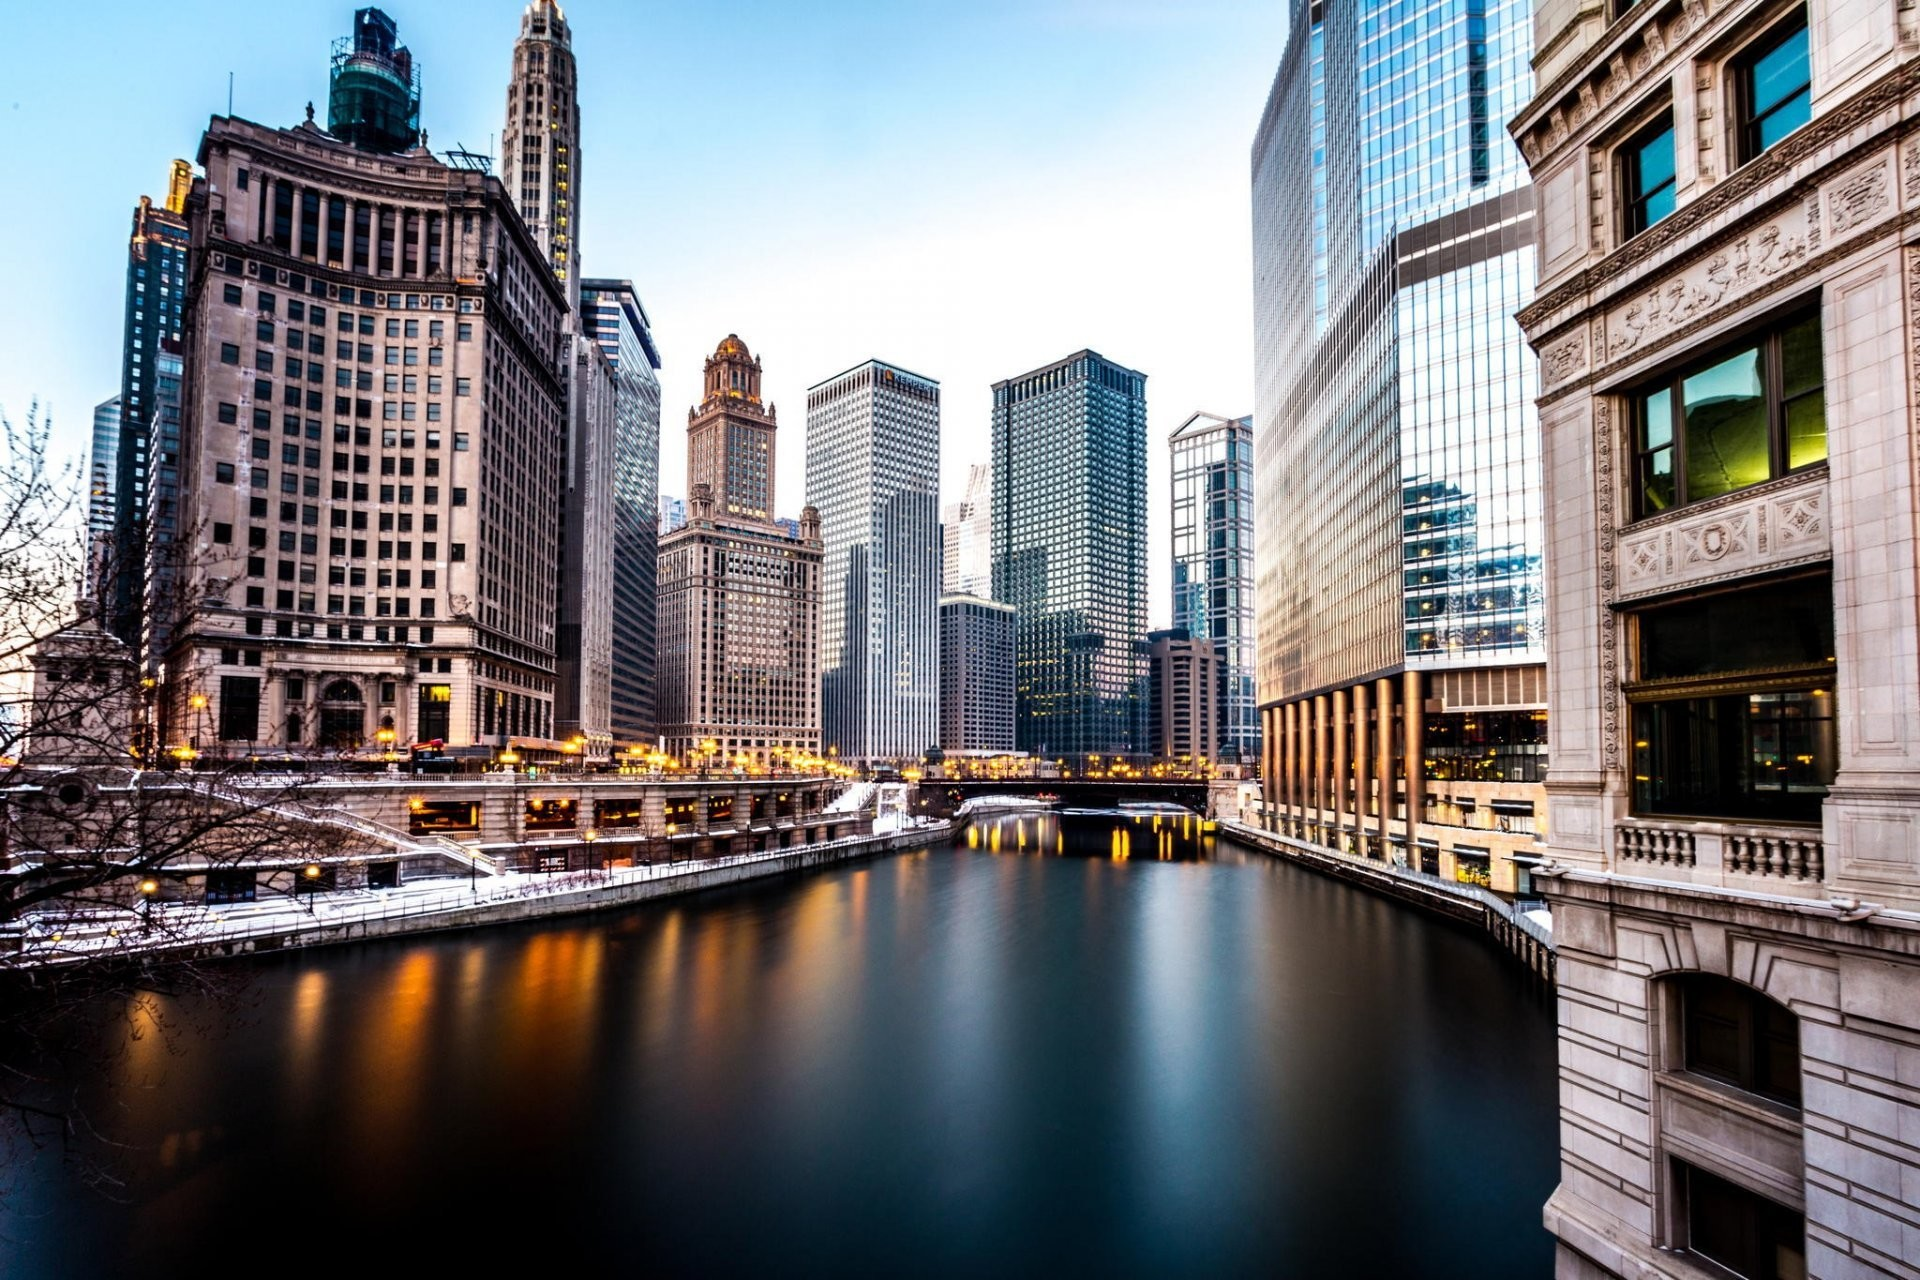 1920x1280 chicago america chicago america buildings skyscraper night winter river  river